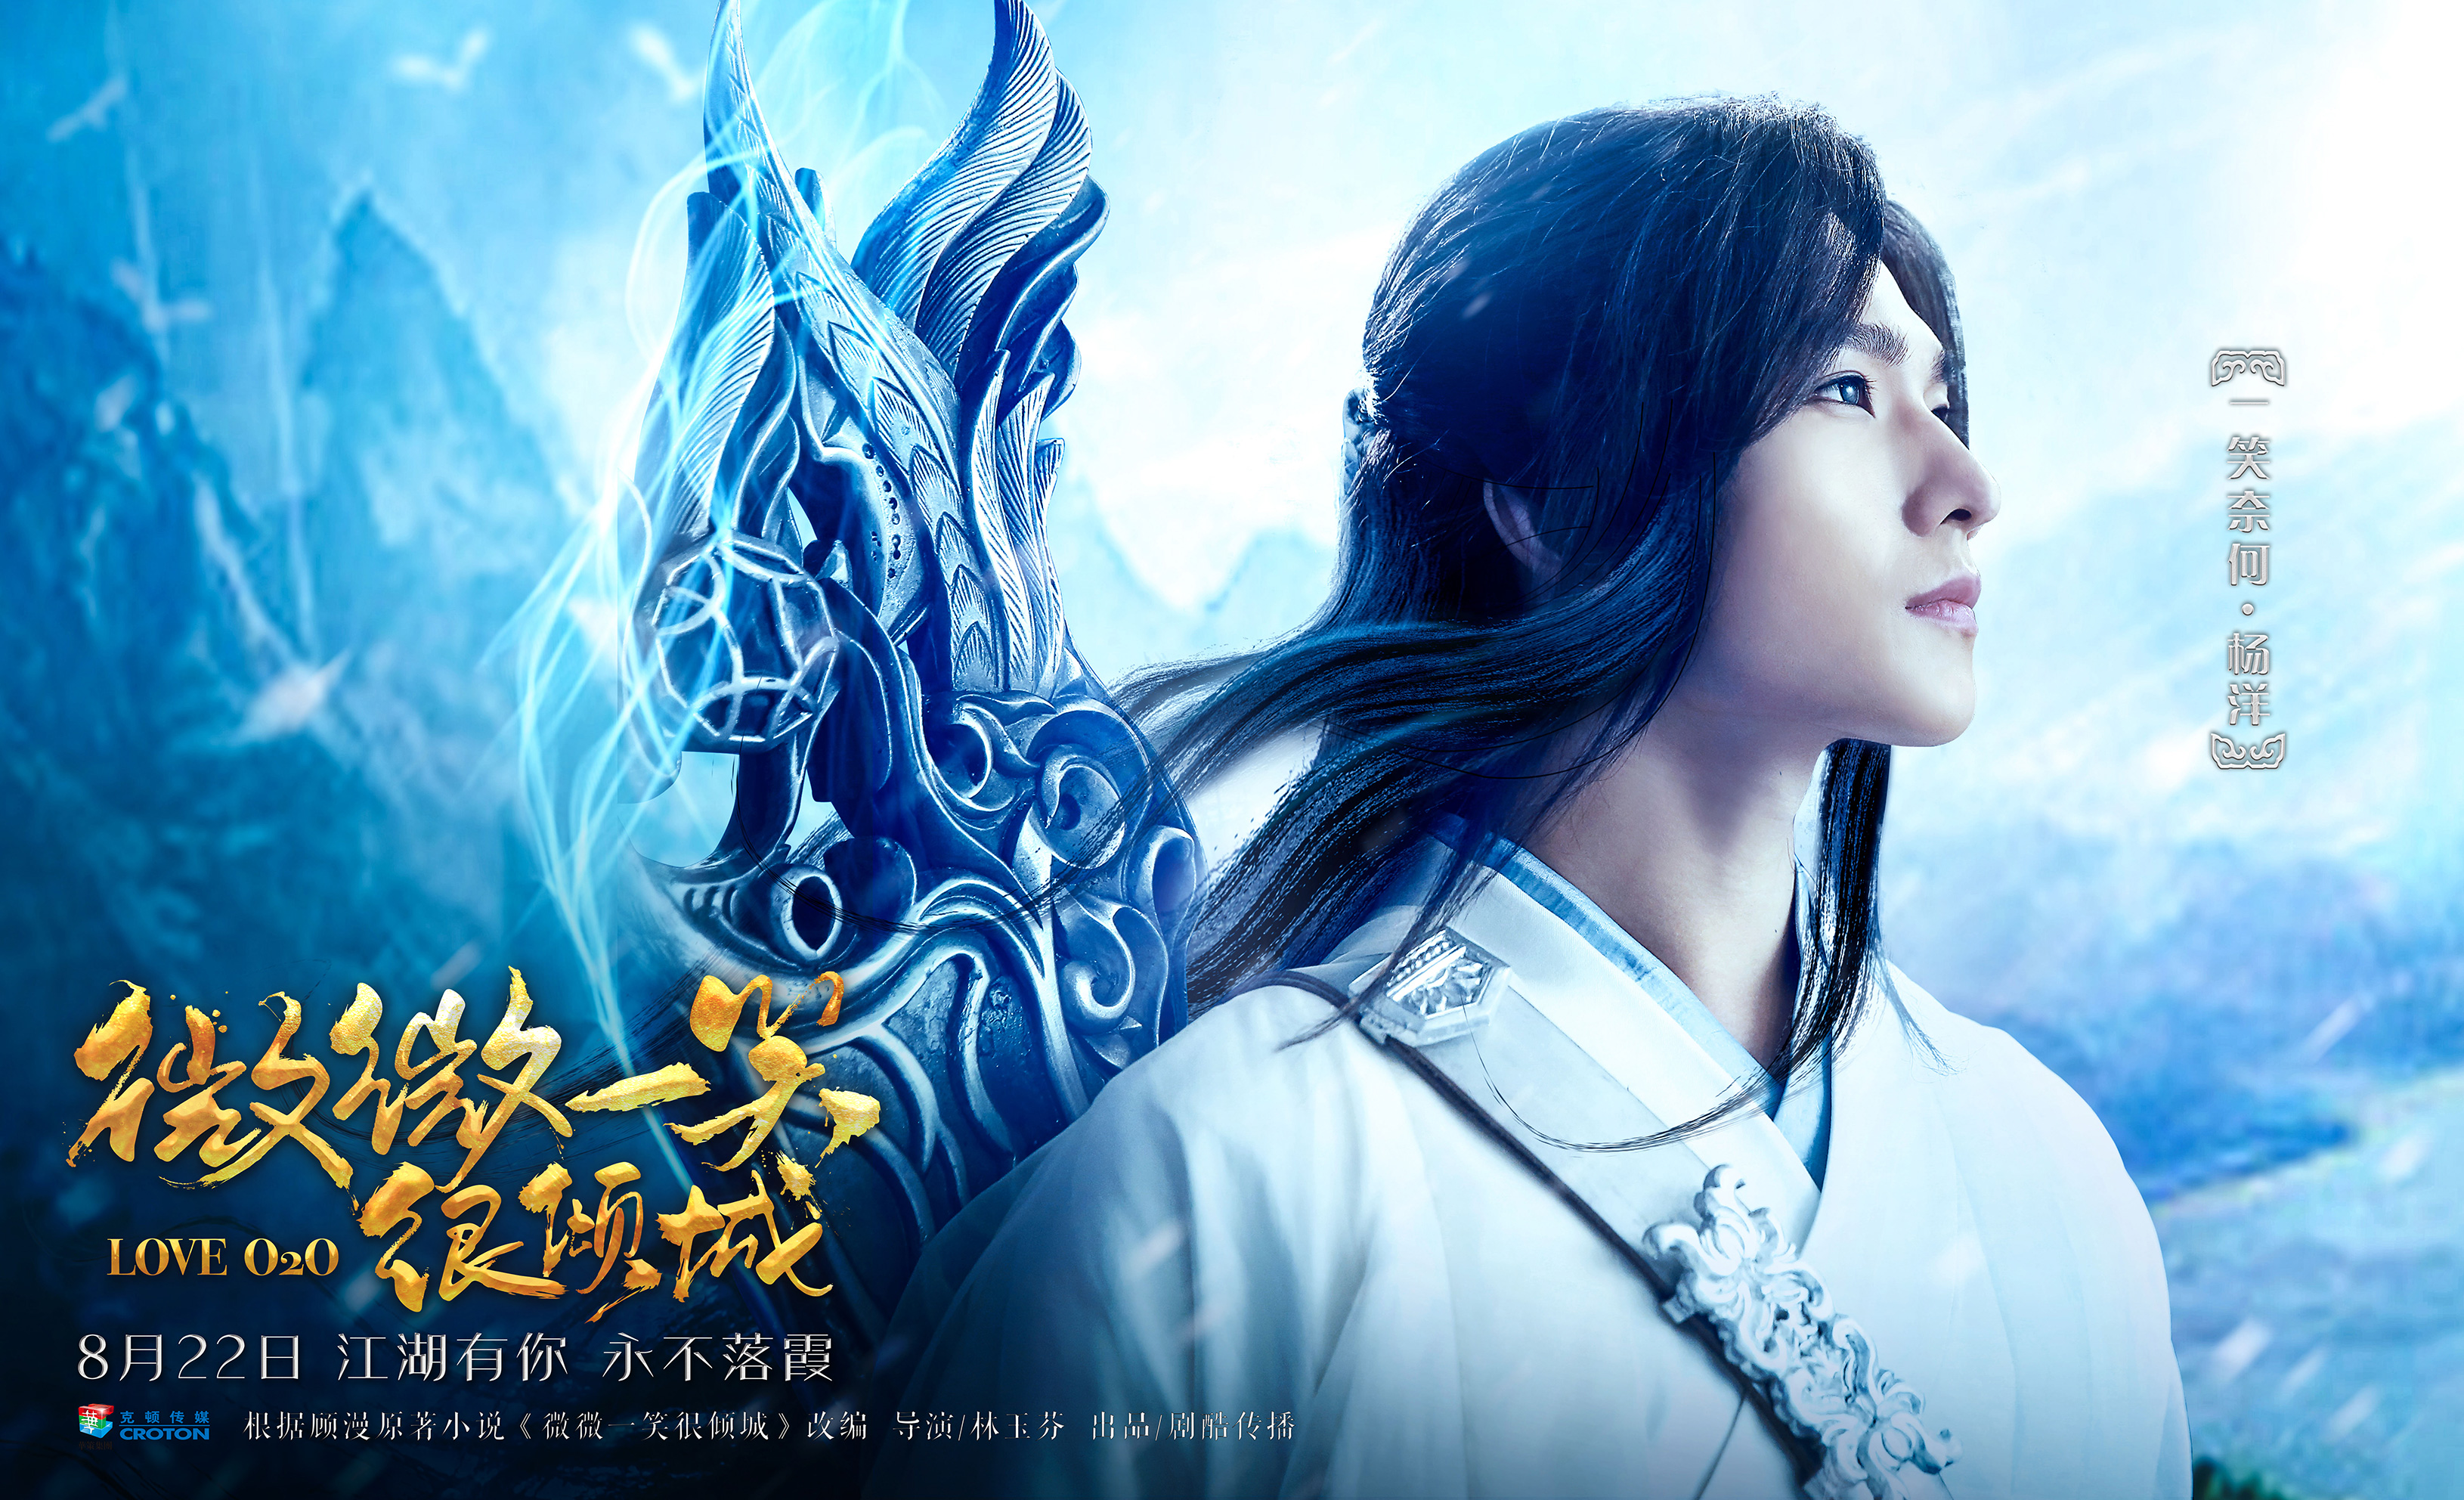 Online Personas Revealed For Yang Yang And Zheng Shuang S Love O2o Cfensi